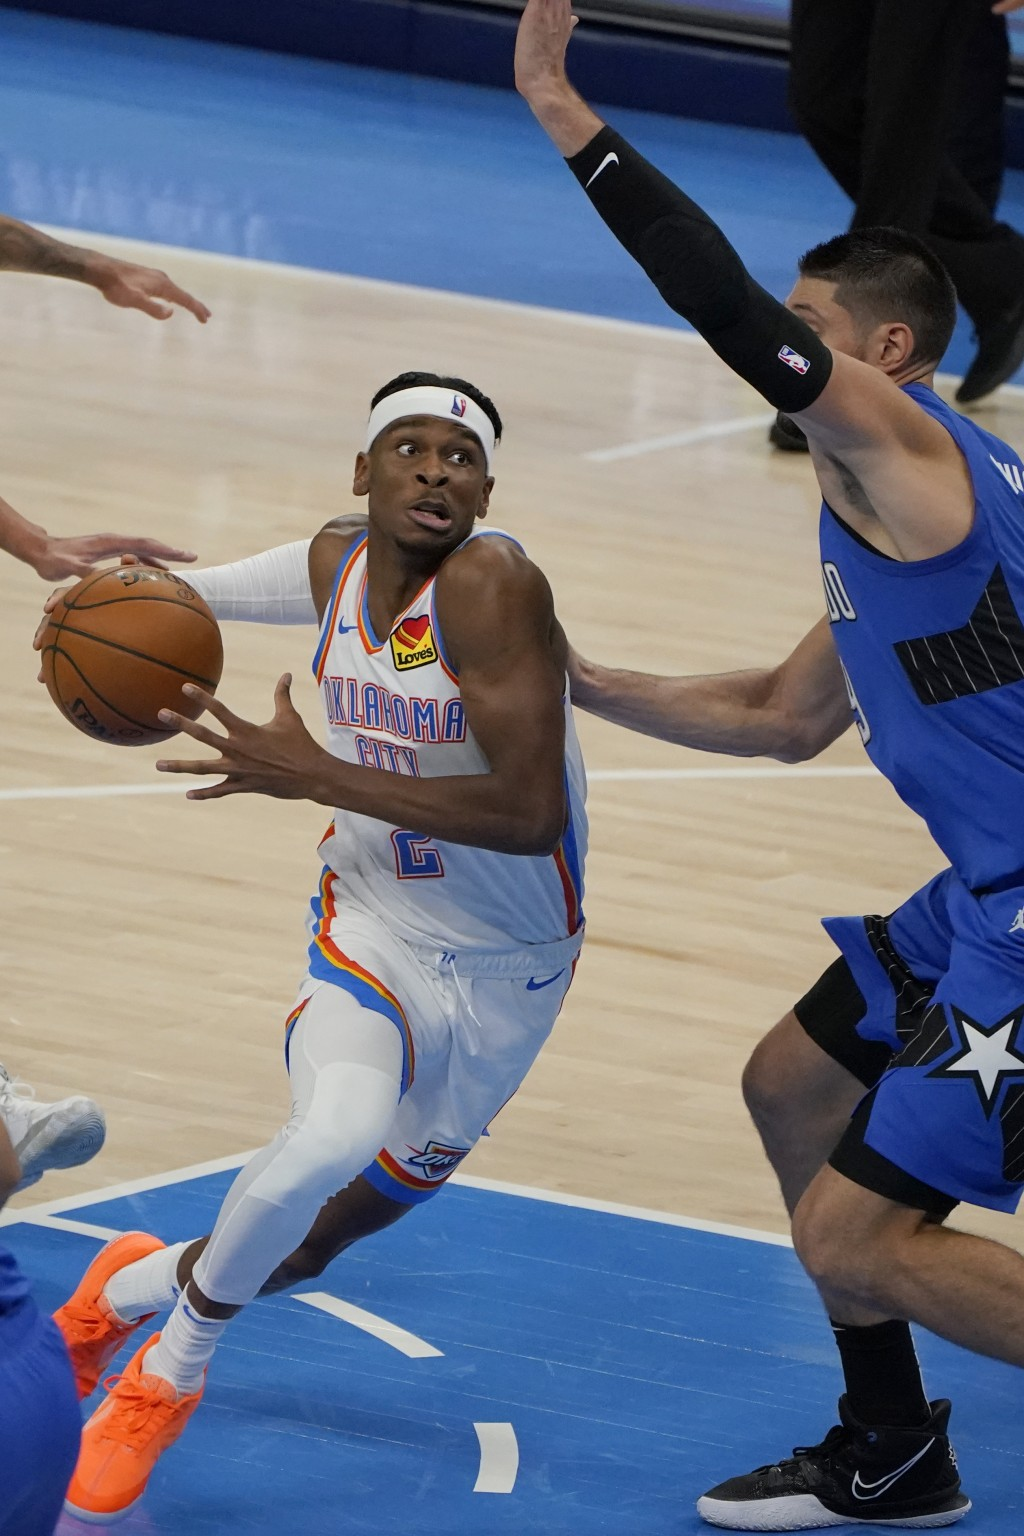 Oklahoma City Thunder guard Shai Gilgeous-Alexander (2) drives around Orlando Magic center Nikola Vucevic during the second half of an NBA basketball ...